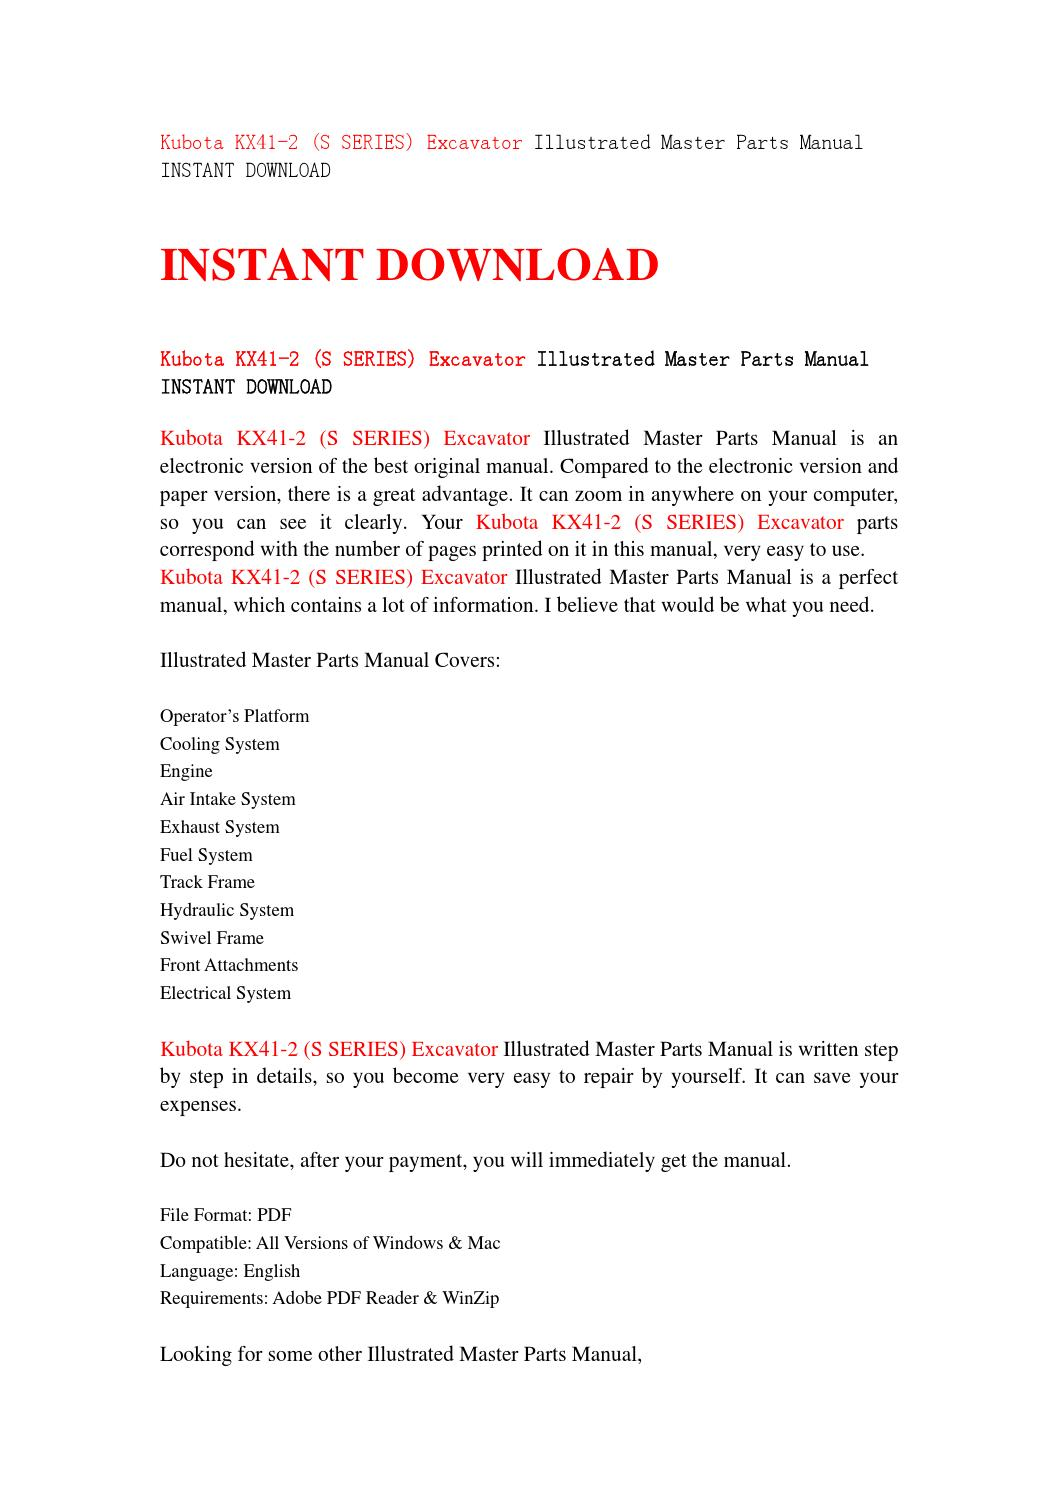 Kubota kx41 2 (s series) excavator illustrated master parts manual instant  download by iusefjsnen - issuu